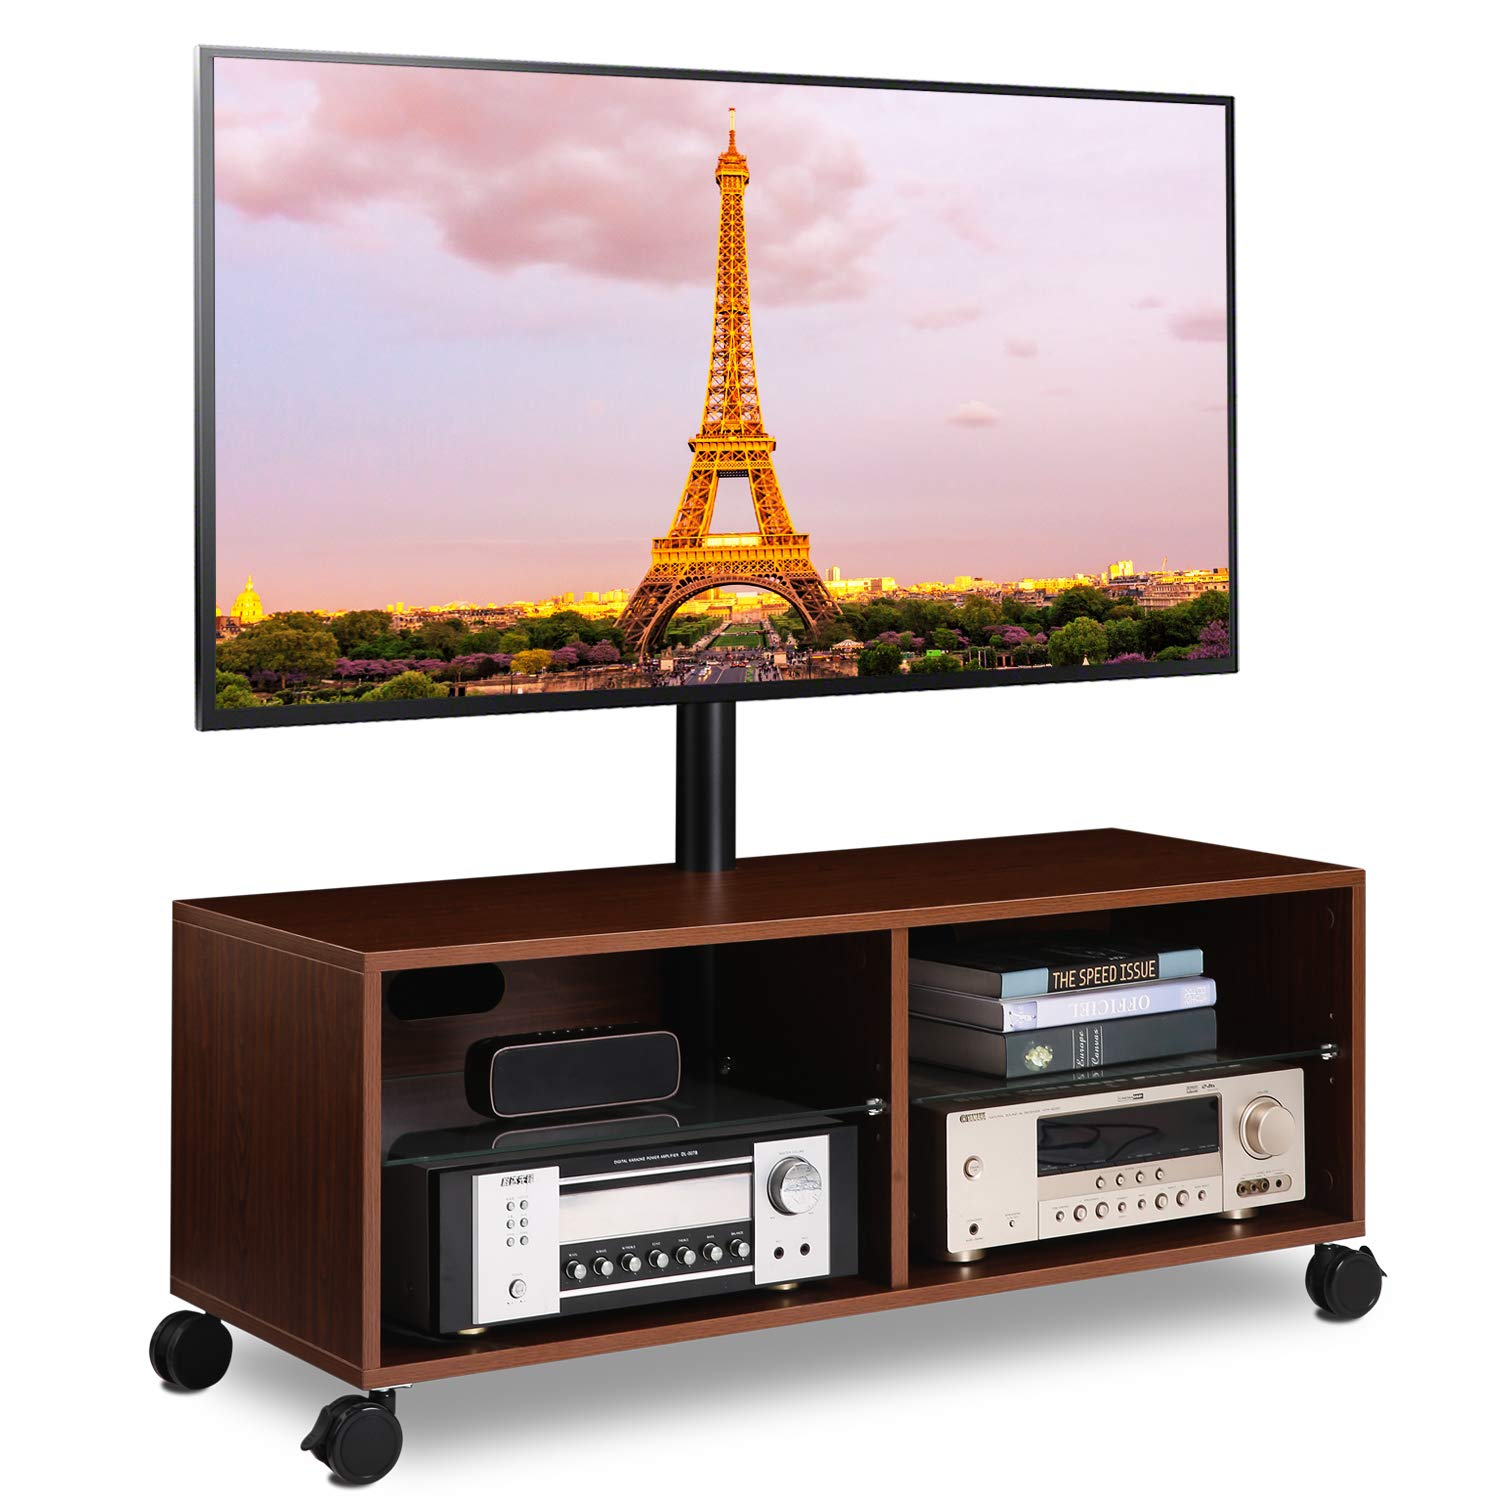 5Rcom Rolling Wood Entertainment TV Stands with Swivel Mount and Height Adjustable for Most Flat/Curved Panel TVs from 32 to 65 Inch, Sturdy and Durable, Walnut by 5Rcom